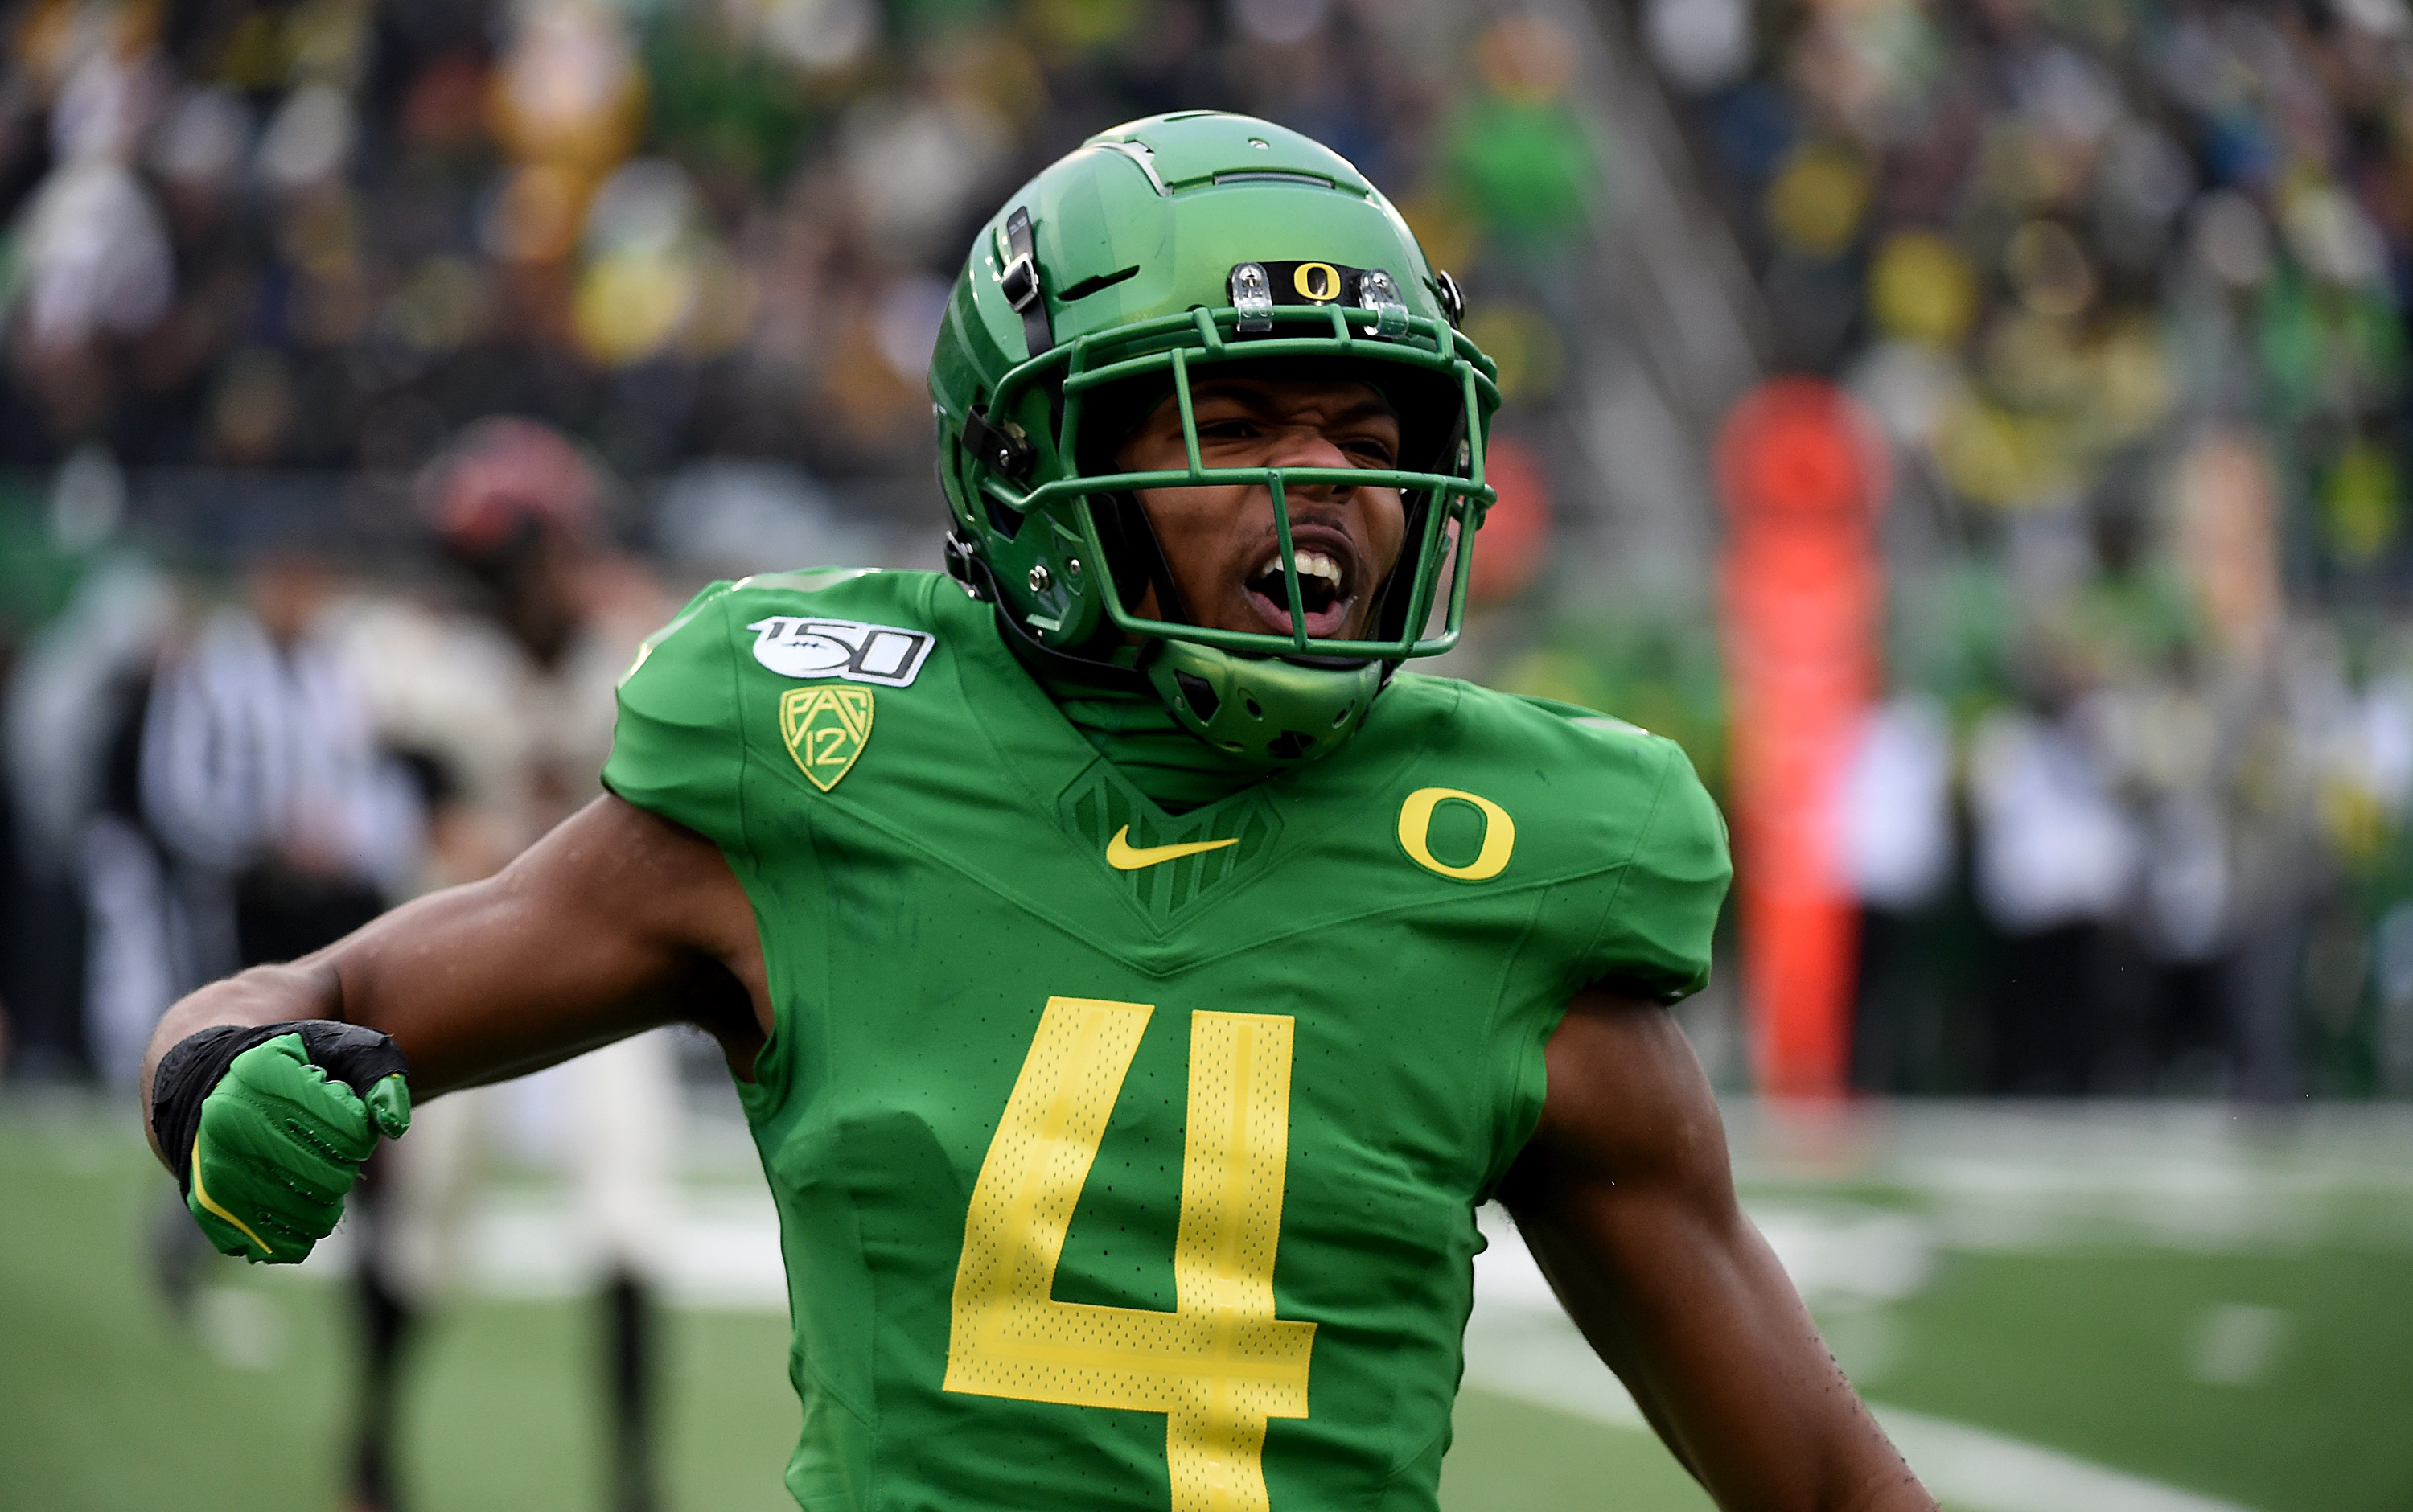 Thomas Graham started 39-straight games at Oregon.